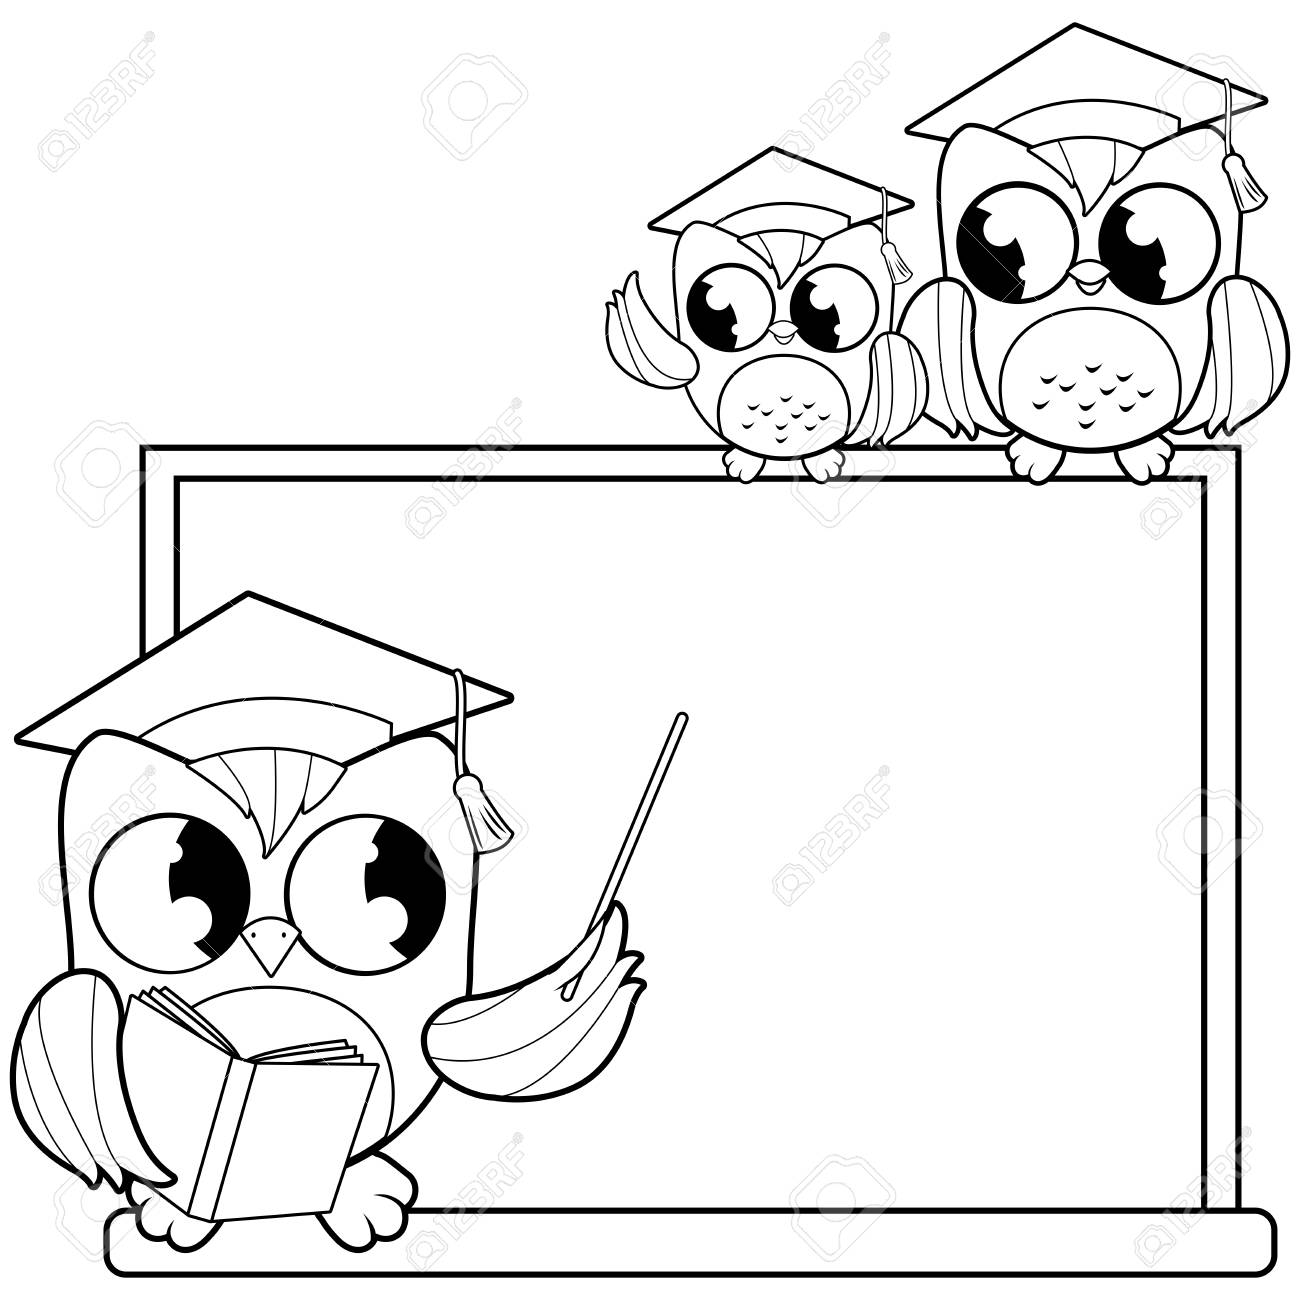 Teacher Black Woman Standing With Open Book At The Blackboard.. Royalty  Free Cliparts, Vectors, And Stock Illustration. Image 110714474.